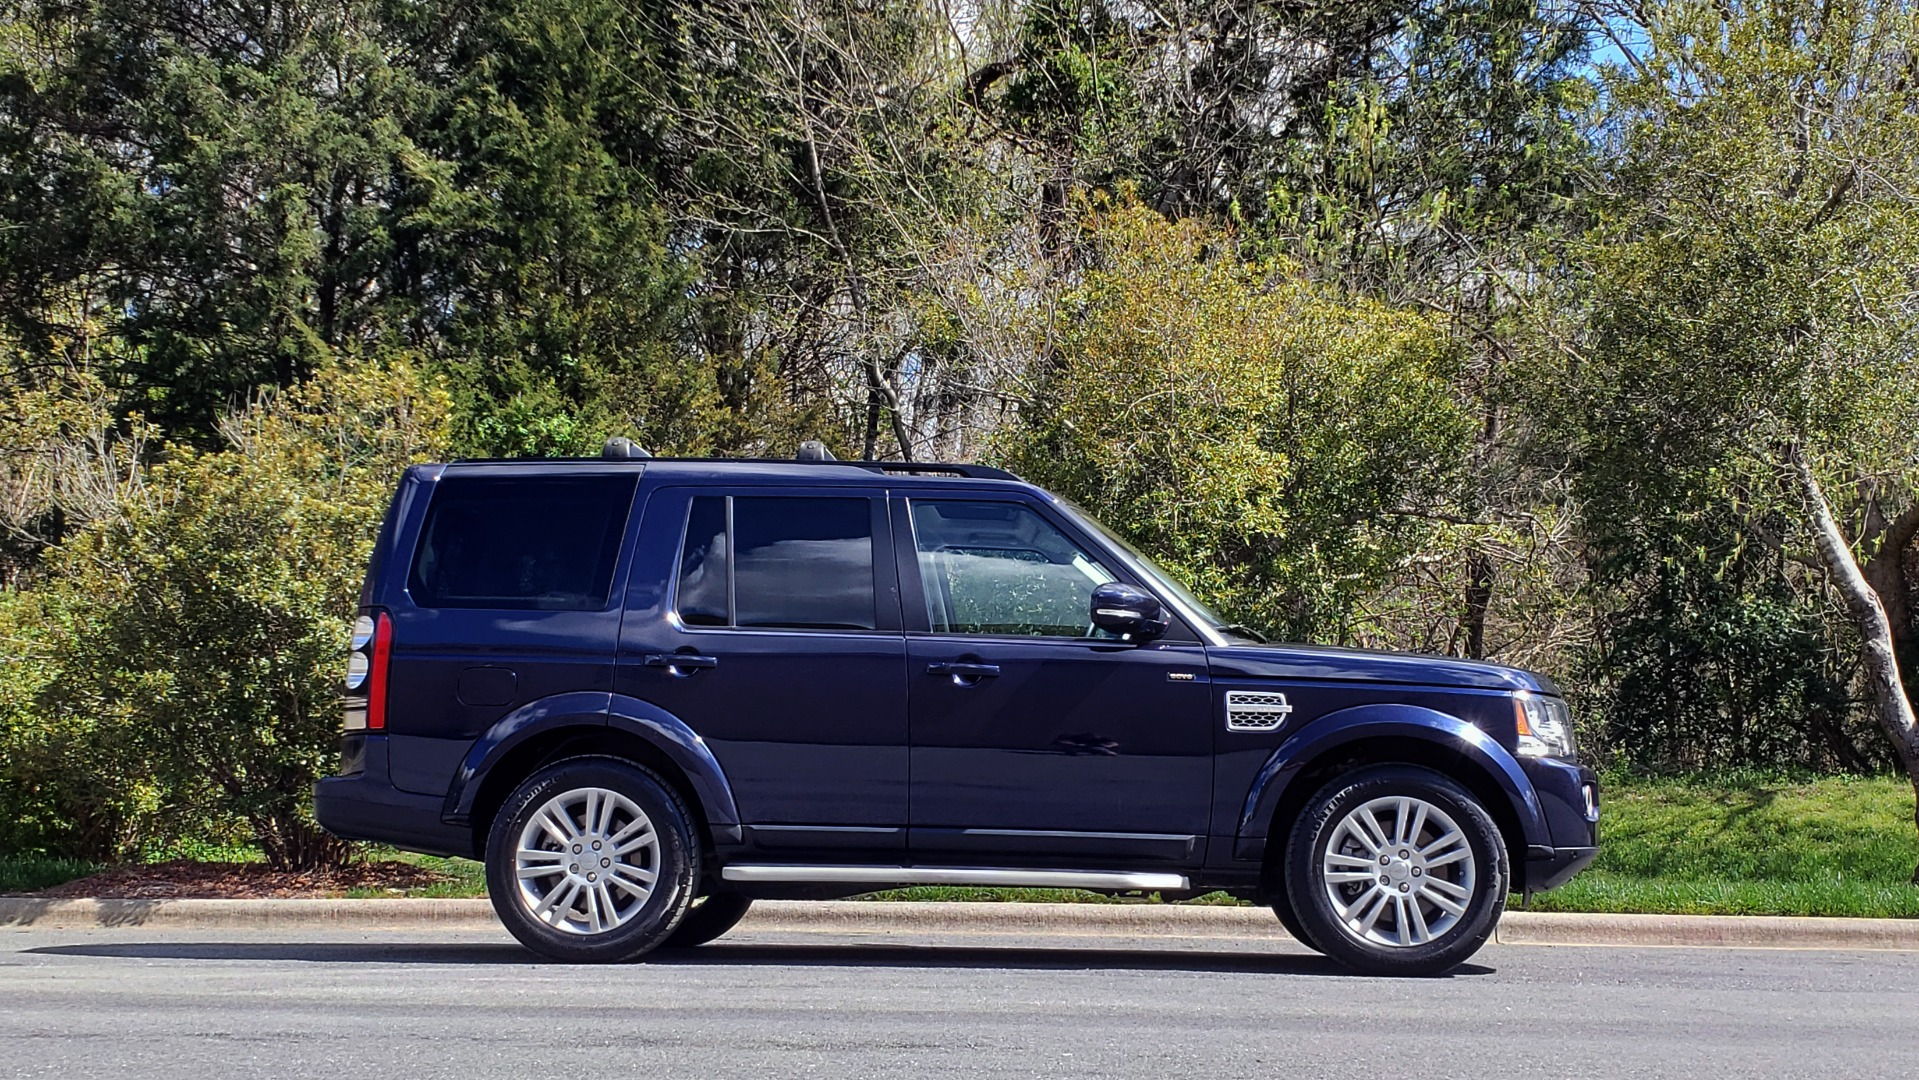 Used 2016 Land Rover LR4 HSE LUX / NAV / SUNROOF / MERIDIAN / REARVIEW / 3-ROW for sale Sold at Formula Imports in Charlotte NC 28227 5